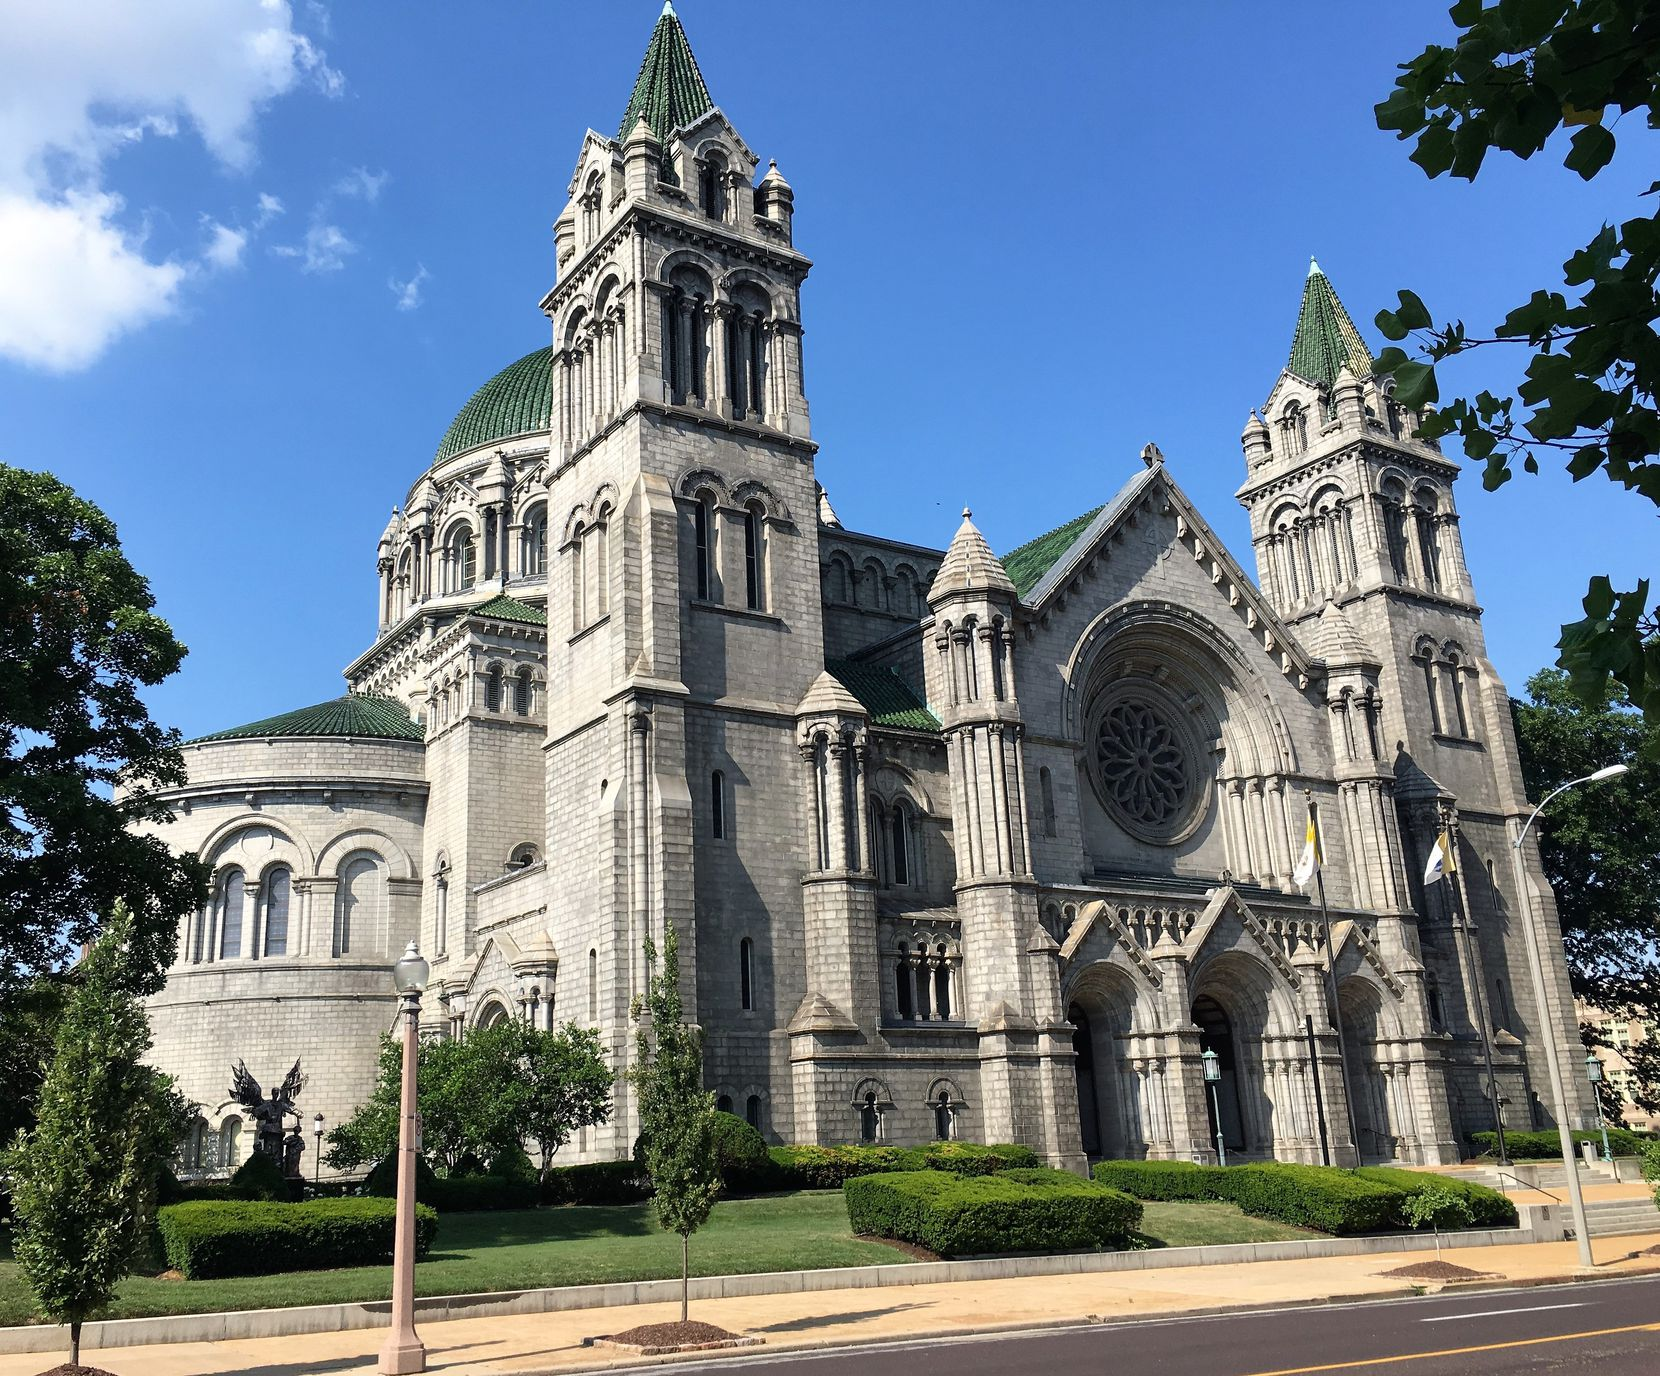 The massive Cathedral Basilica of St. Louis, a.k.a. St. Louis Cathedral,